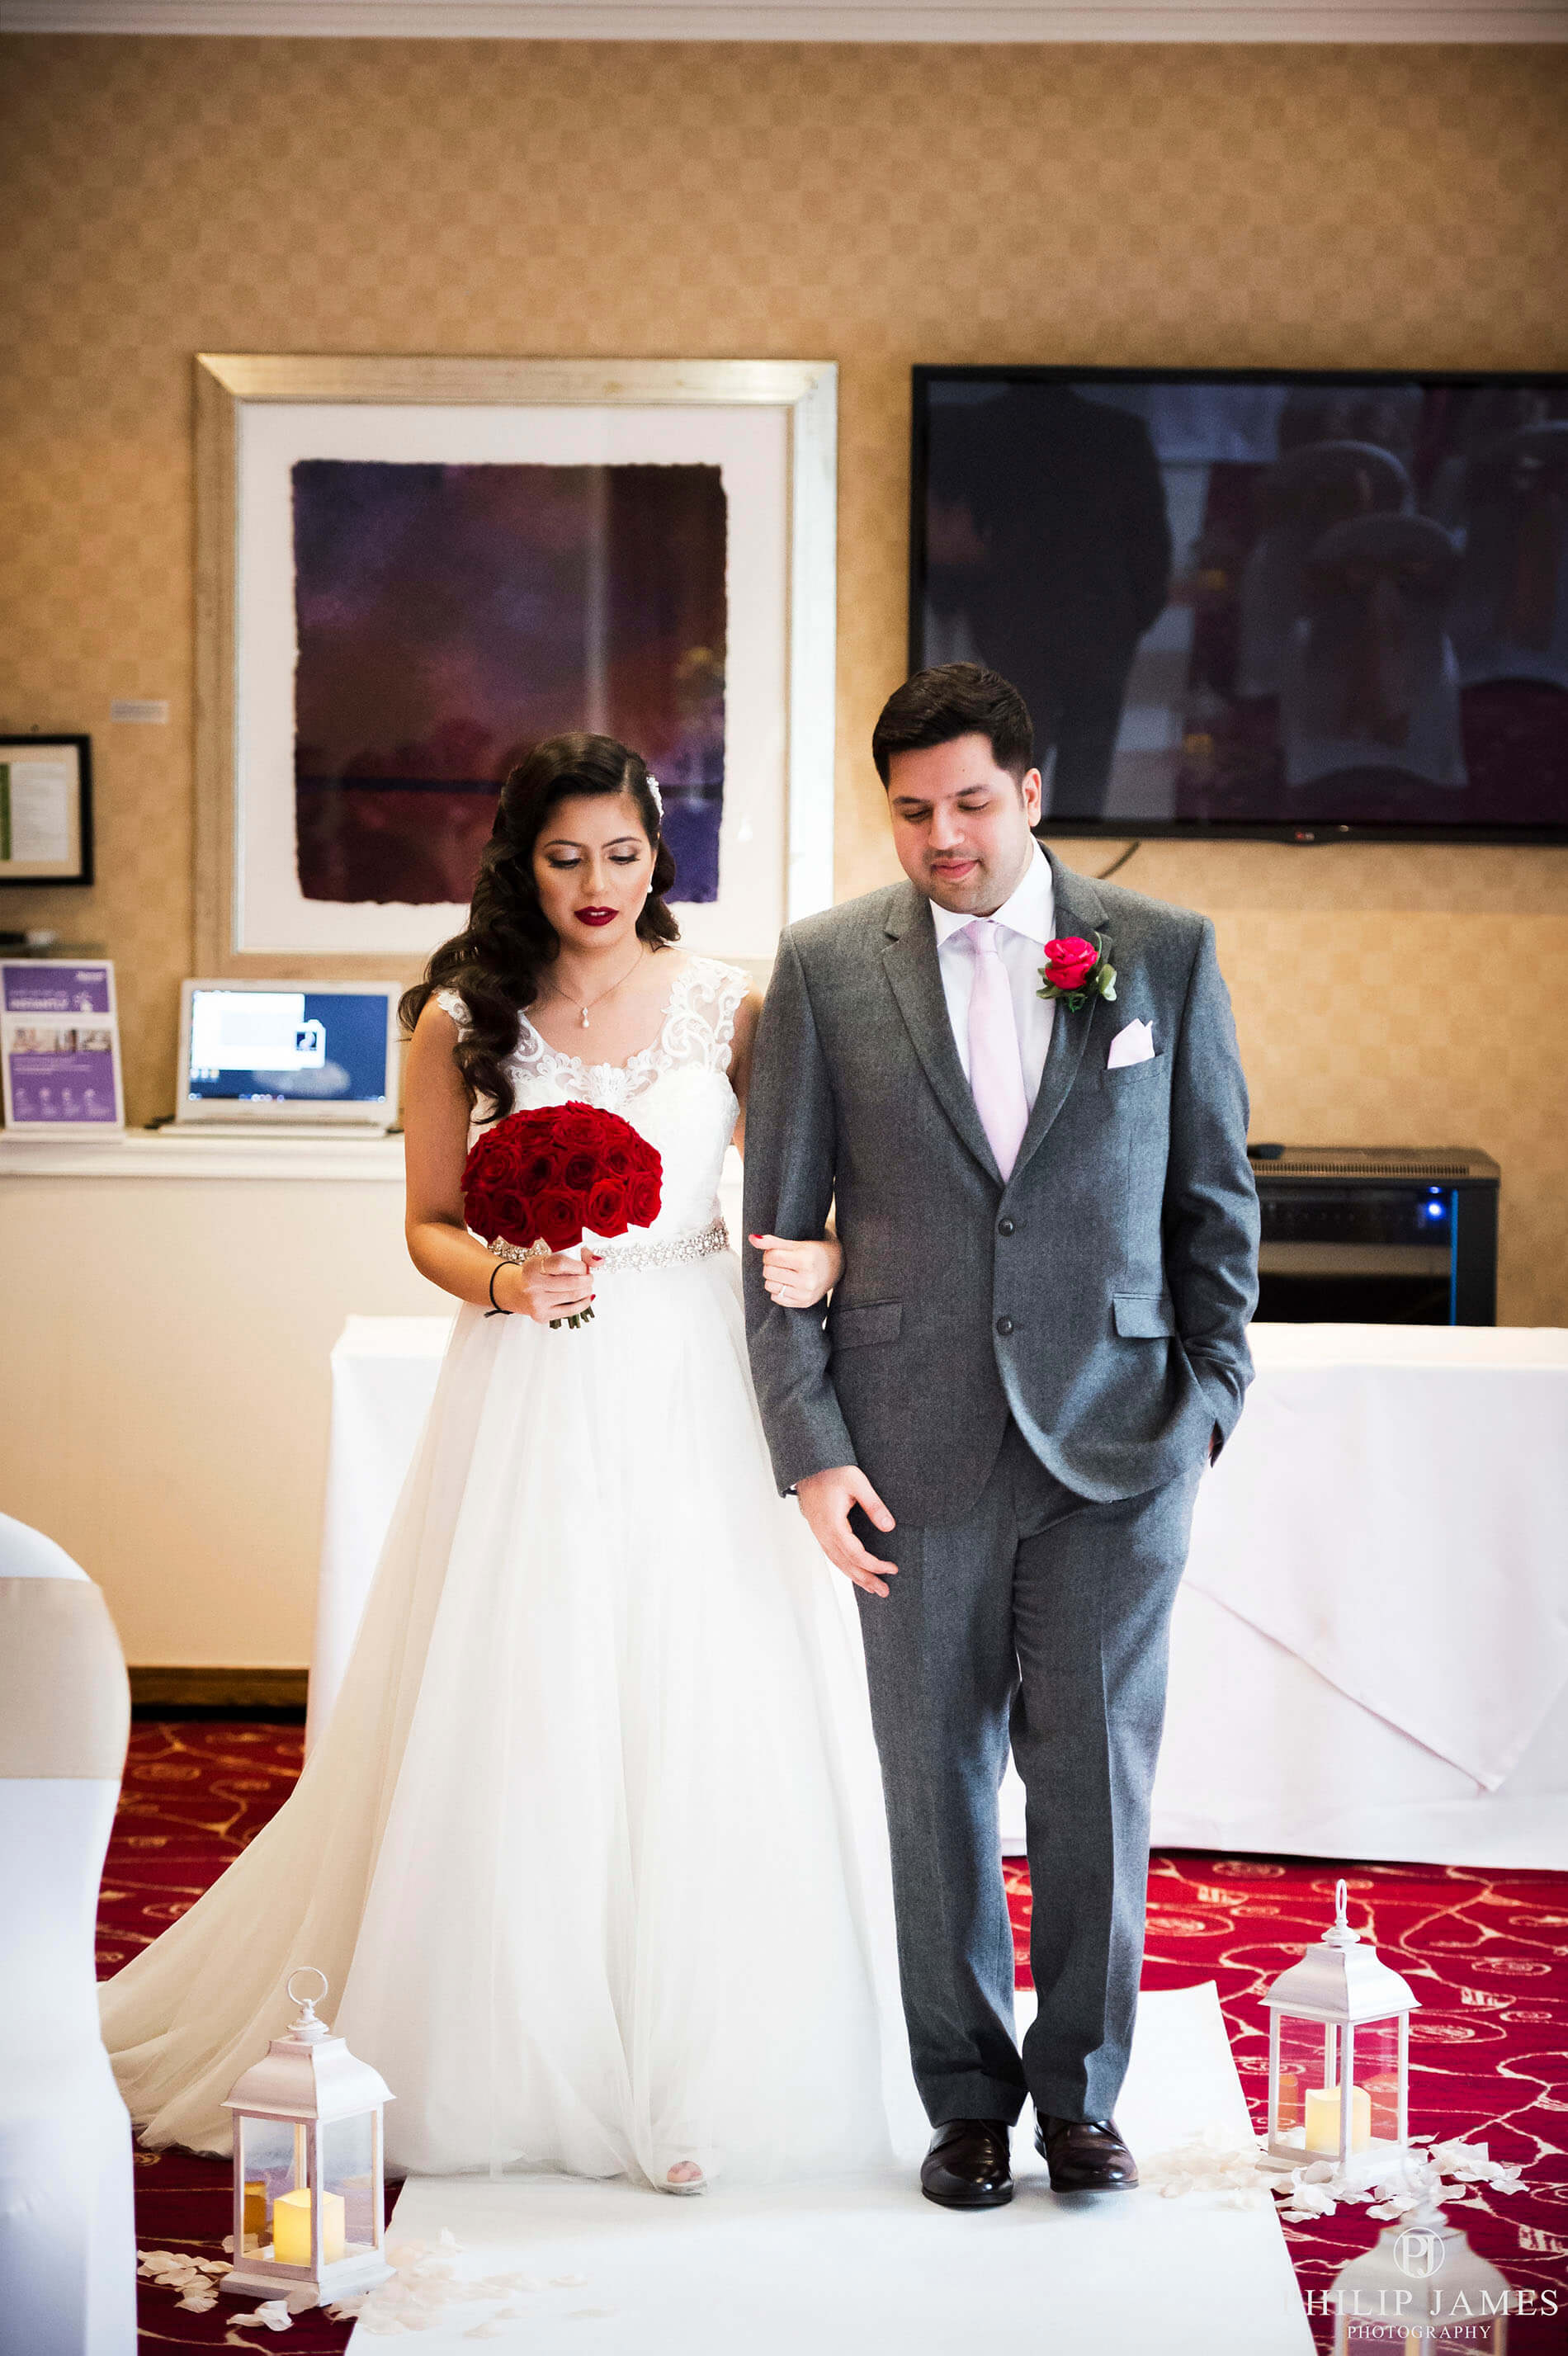 The Marriott Hotel Birmingham - Wedding Photography Birmingham, Solihull, The West Midlands, Warickshire & Overseas. Professional Birmingham Wedding Photographer - Farina & Manbinder